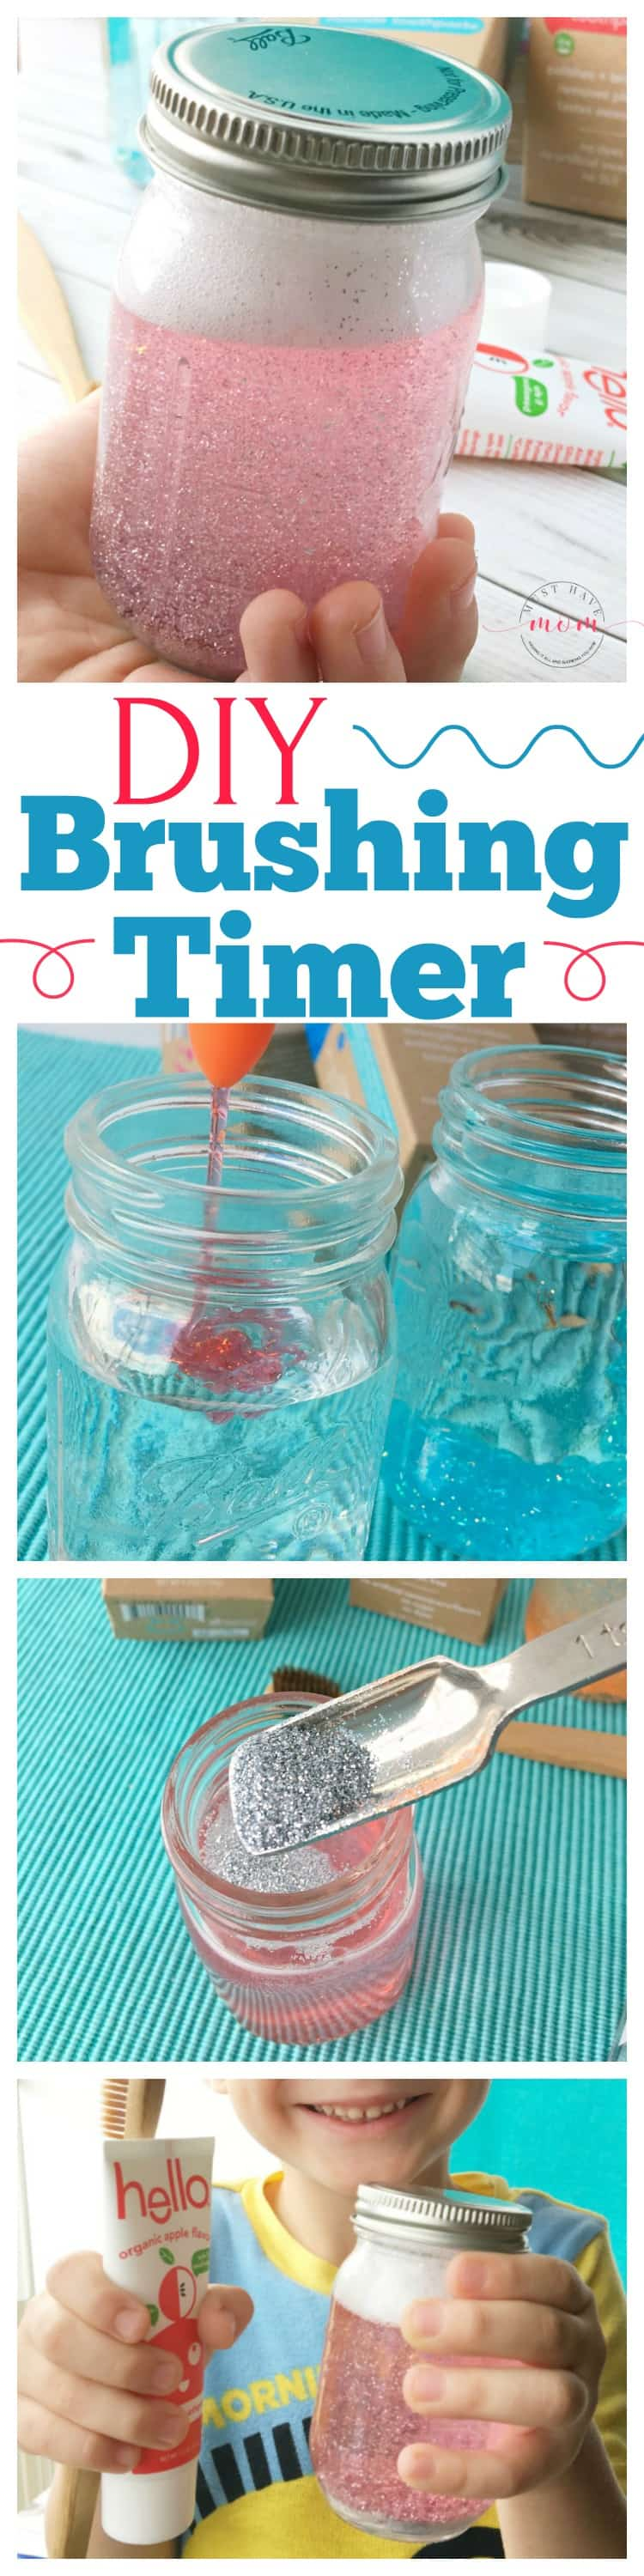 DIY toothbrush timers to help kids learn to brush with fluoride free toothpaste!